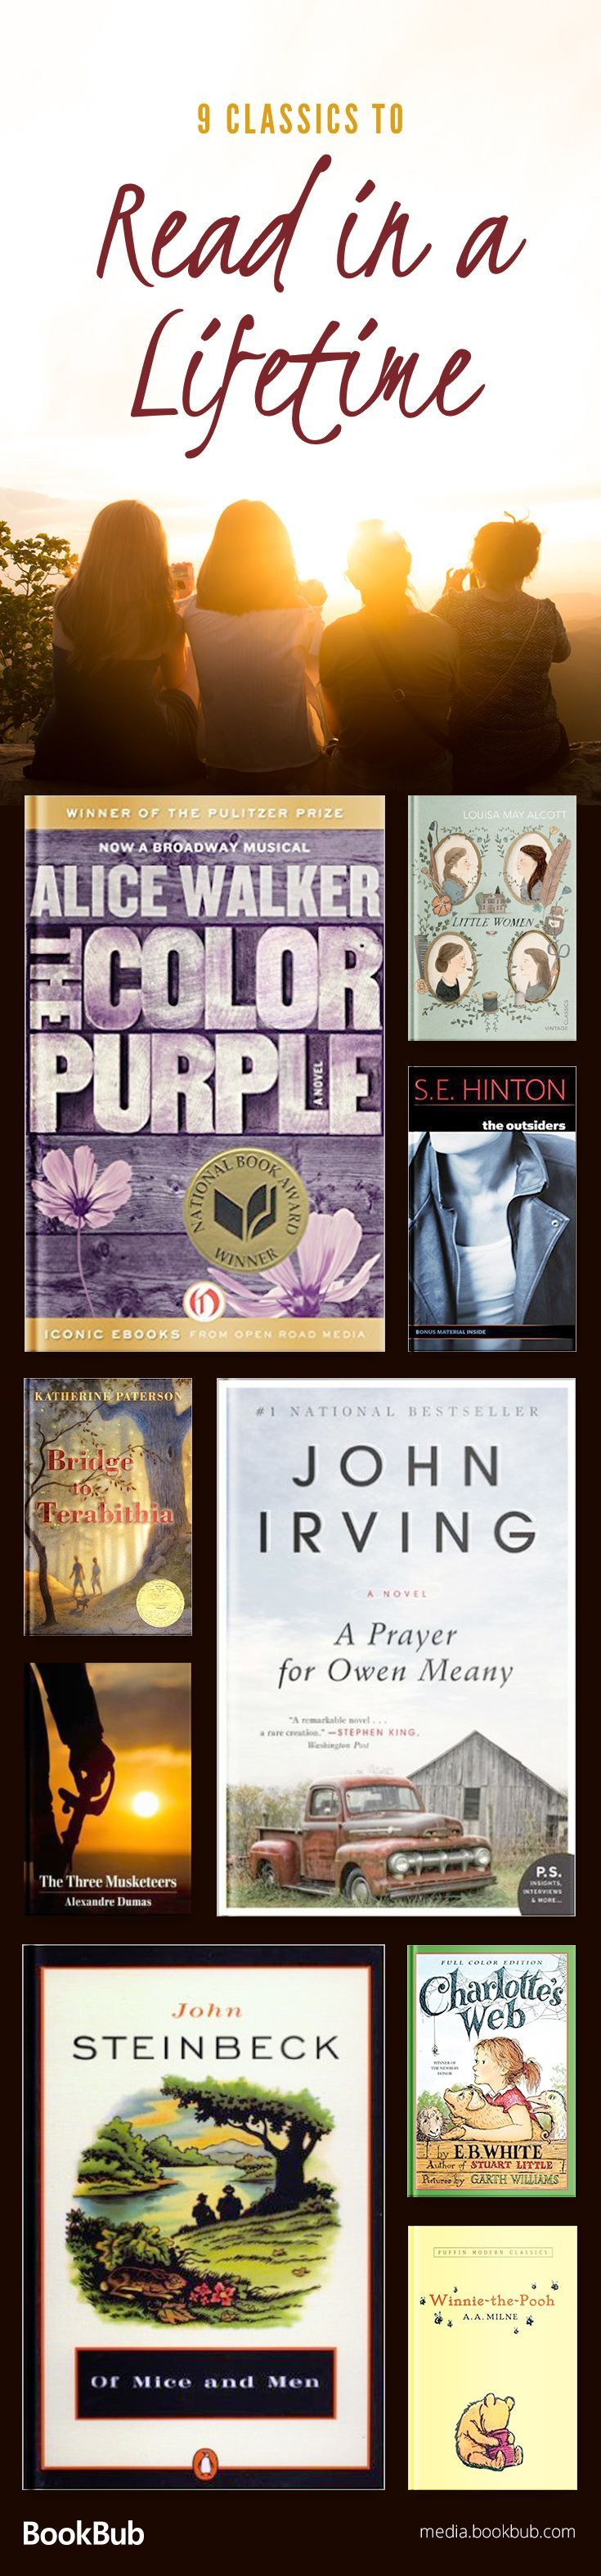 Check out this list of classic books to read in your lifetime, including some of the best timeless literature. If you're looking for reading challenge ideas, this is a great book list for you!